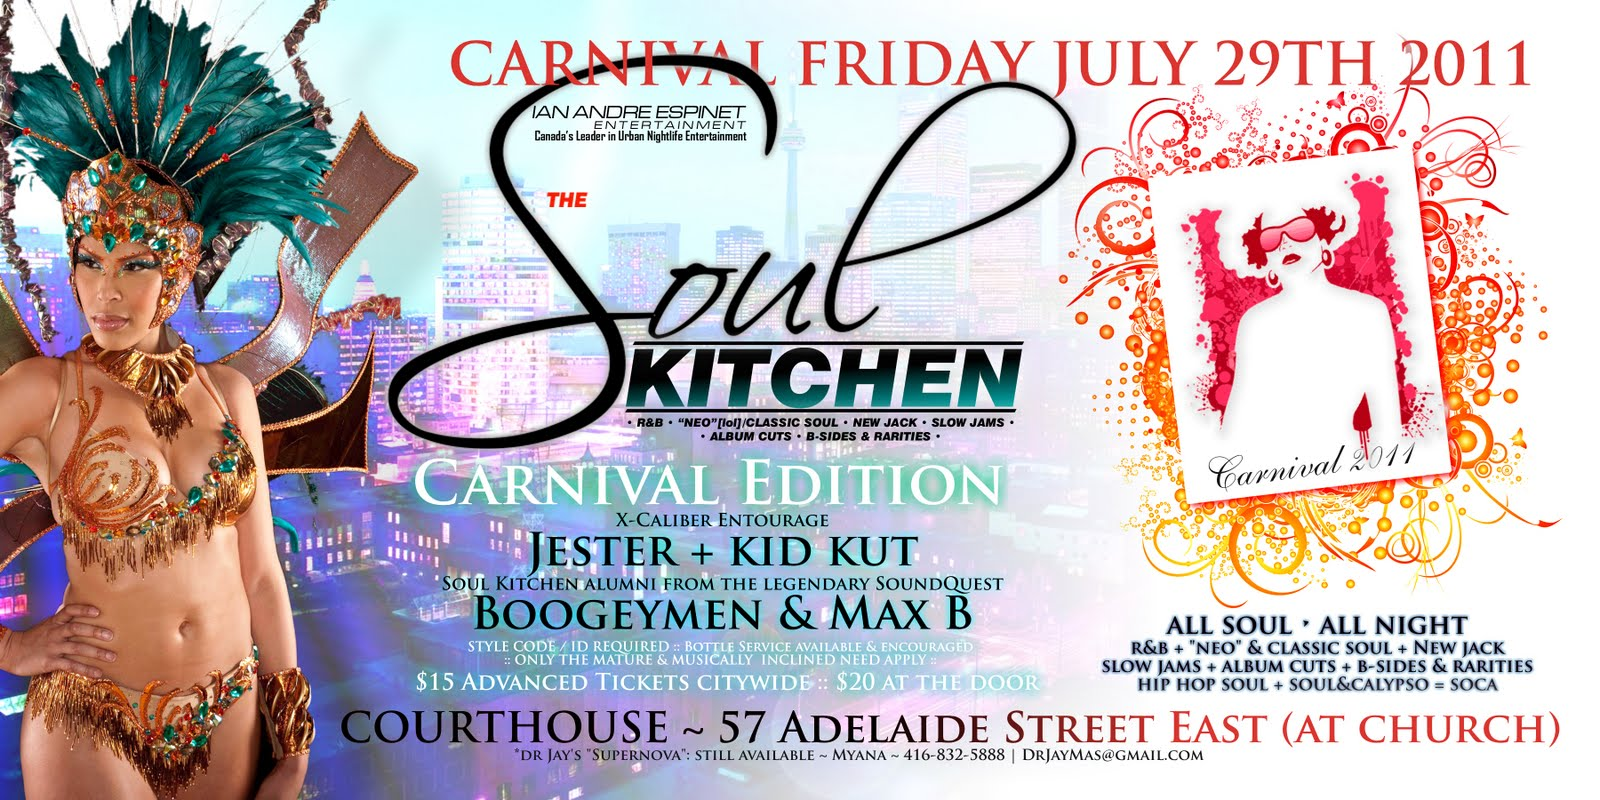 C.A. Confidential: Soul Kitchen - Carnival Edition @ The Courthouse ...